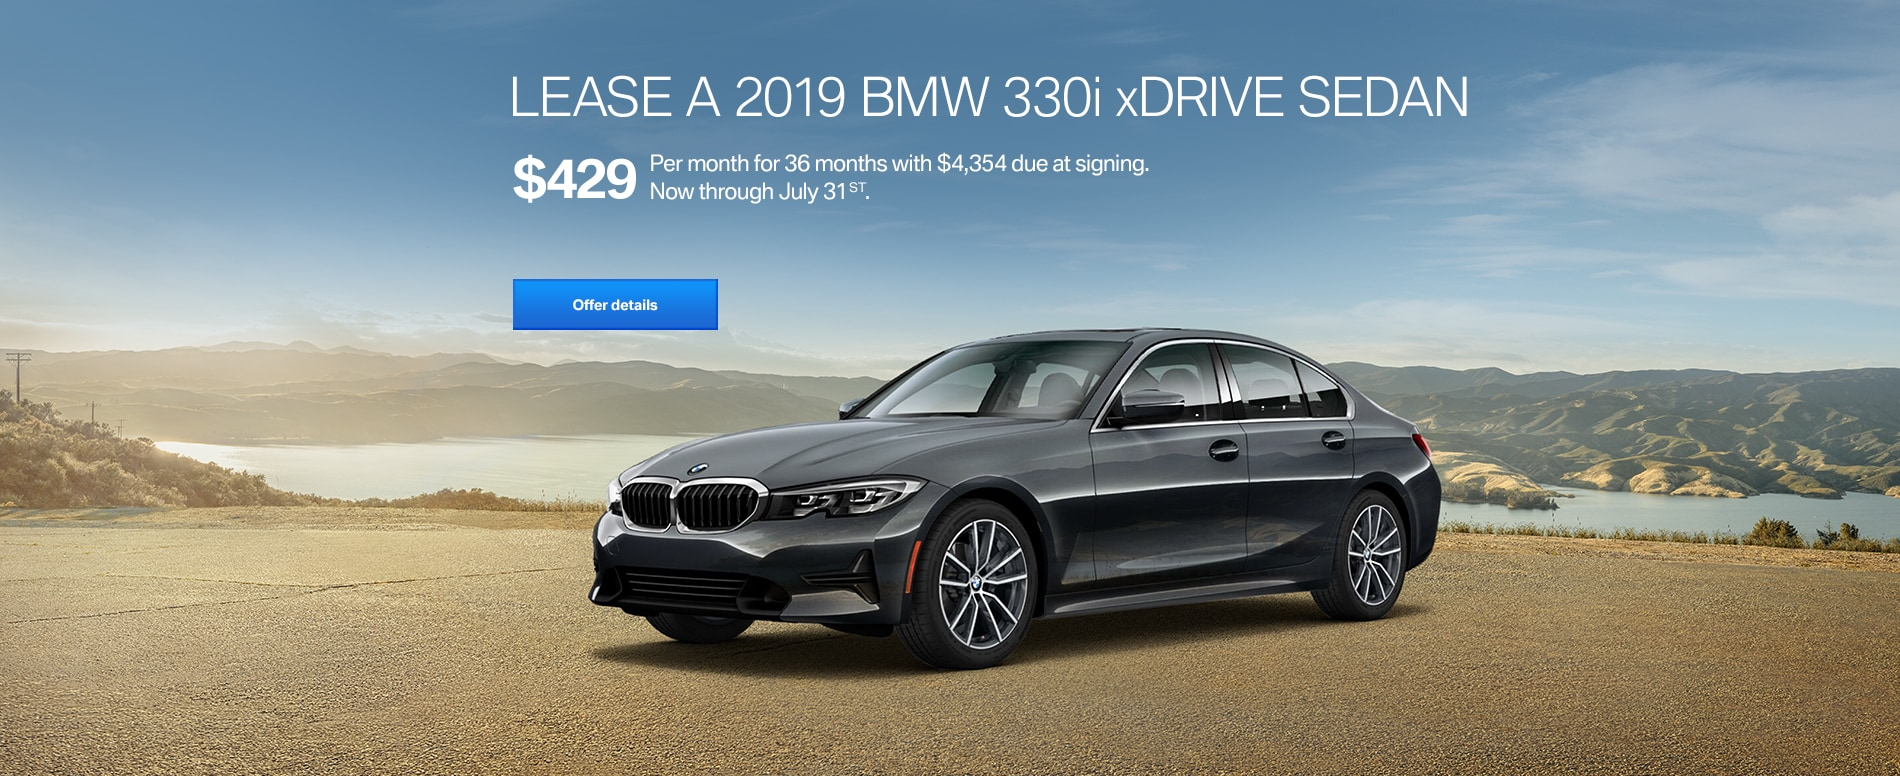 Bmw Dealership Near Me >> Bmw Of Peabody Massachusetts Bmw Dealer Peabody Ma